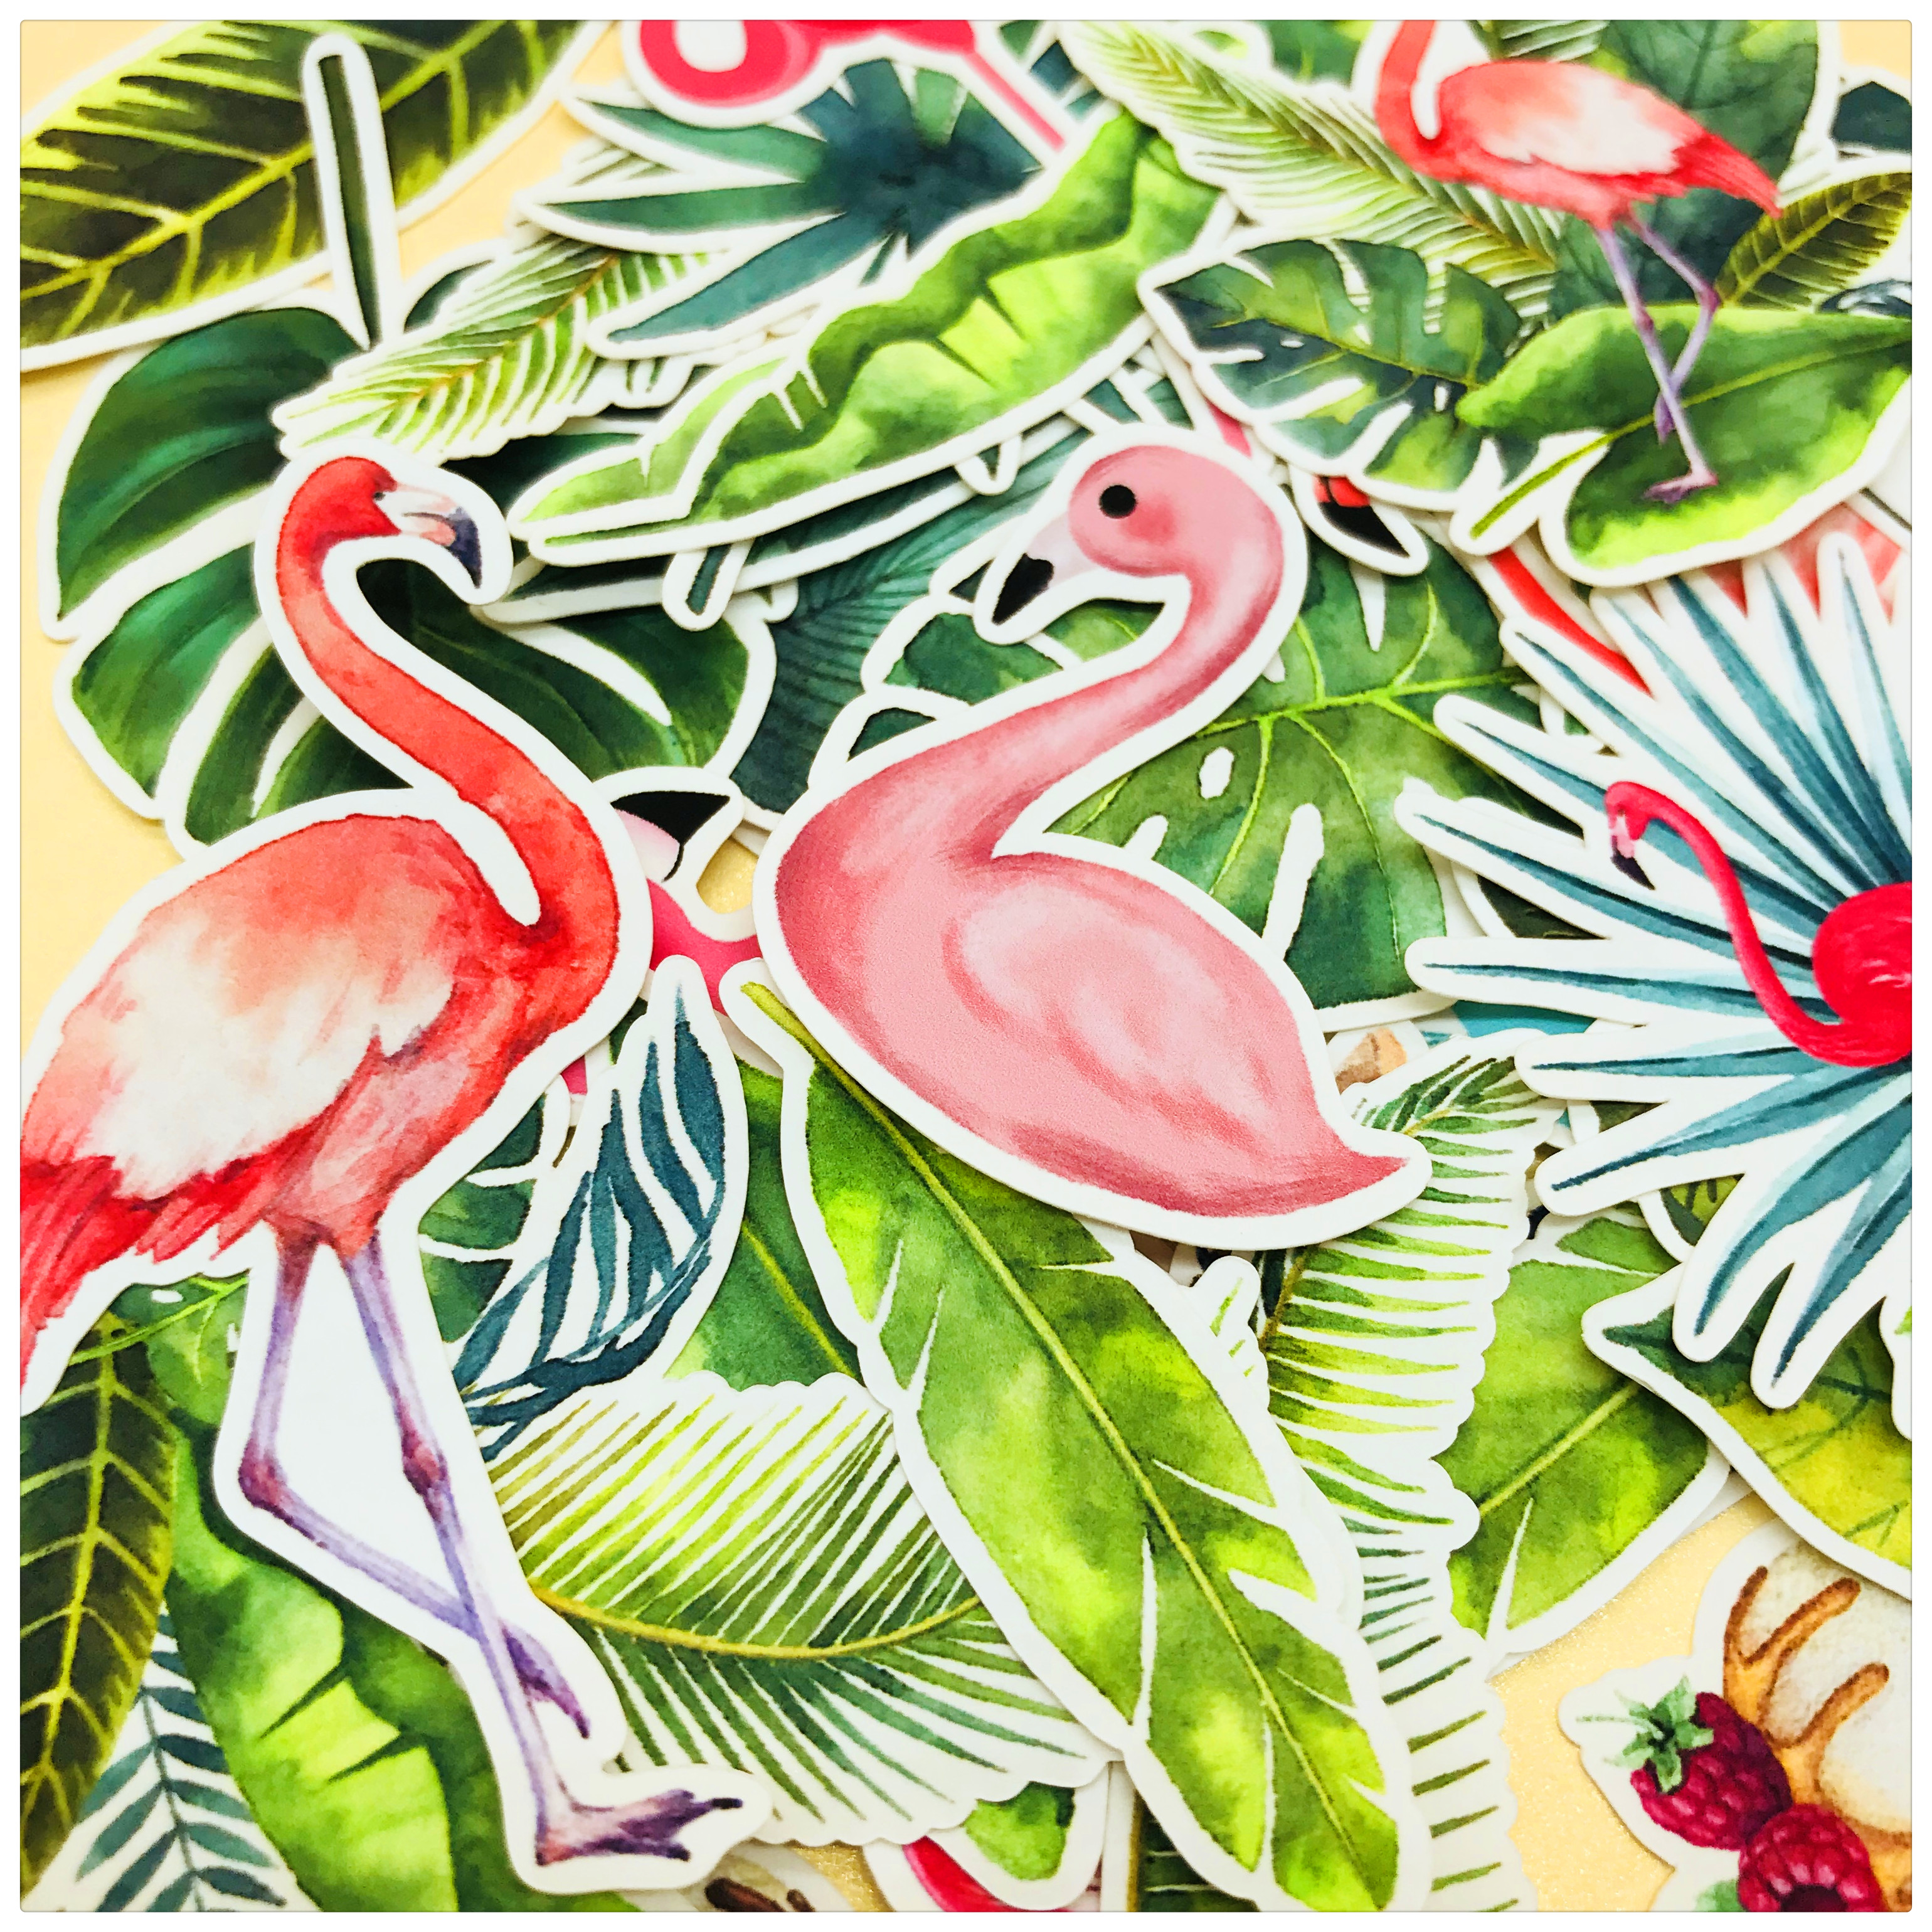 35pcs Cute Flamingo And Big Leaf Plant  Decoration Stationery Sticker Diy Diary Scrapbooking Label Sticker Stationery